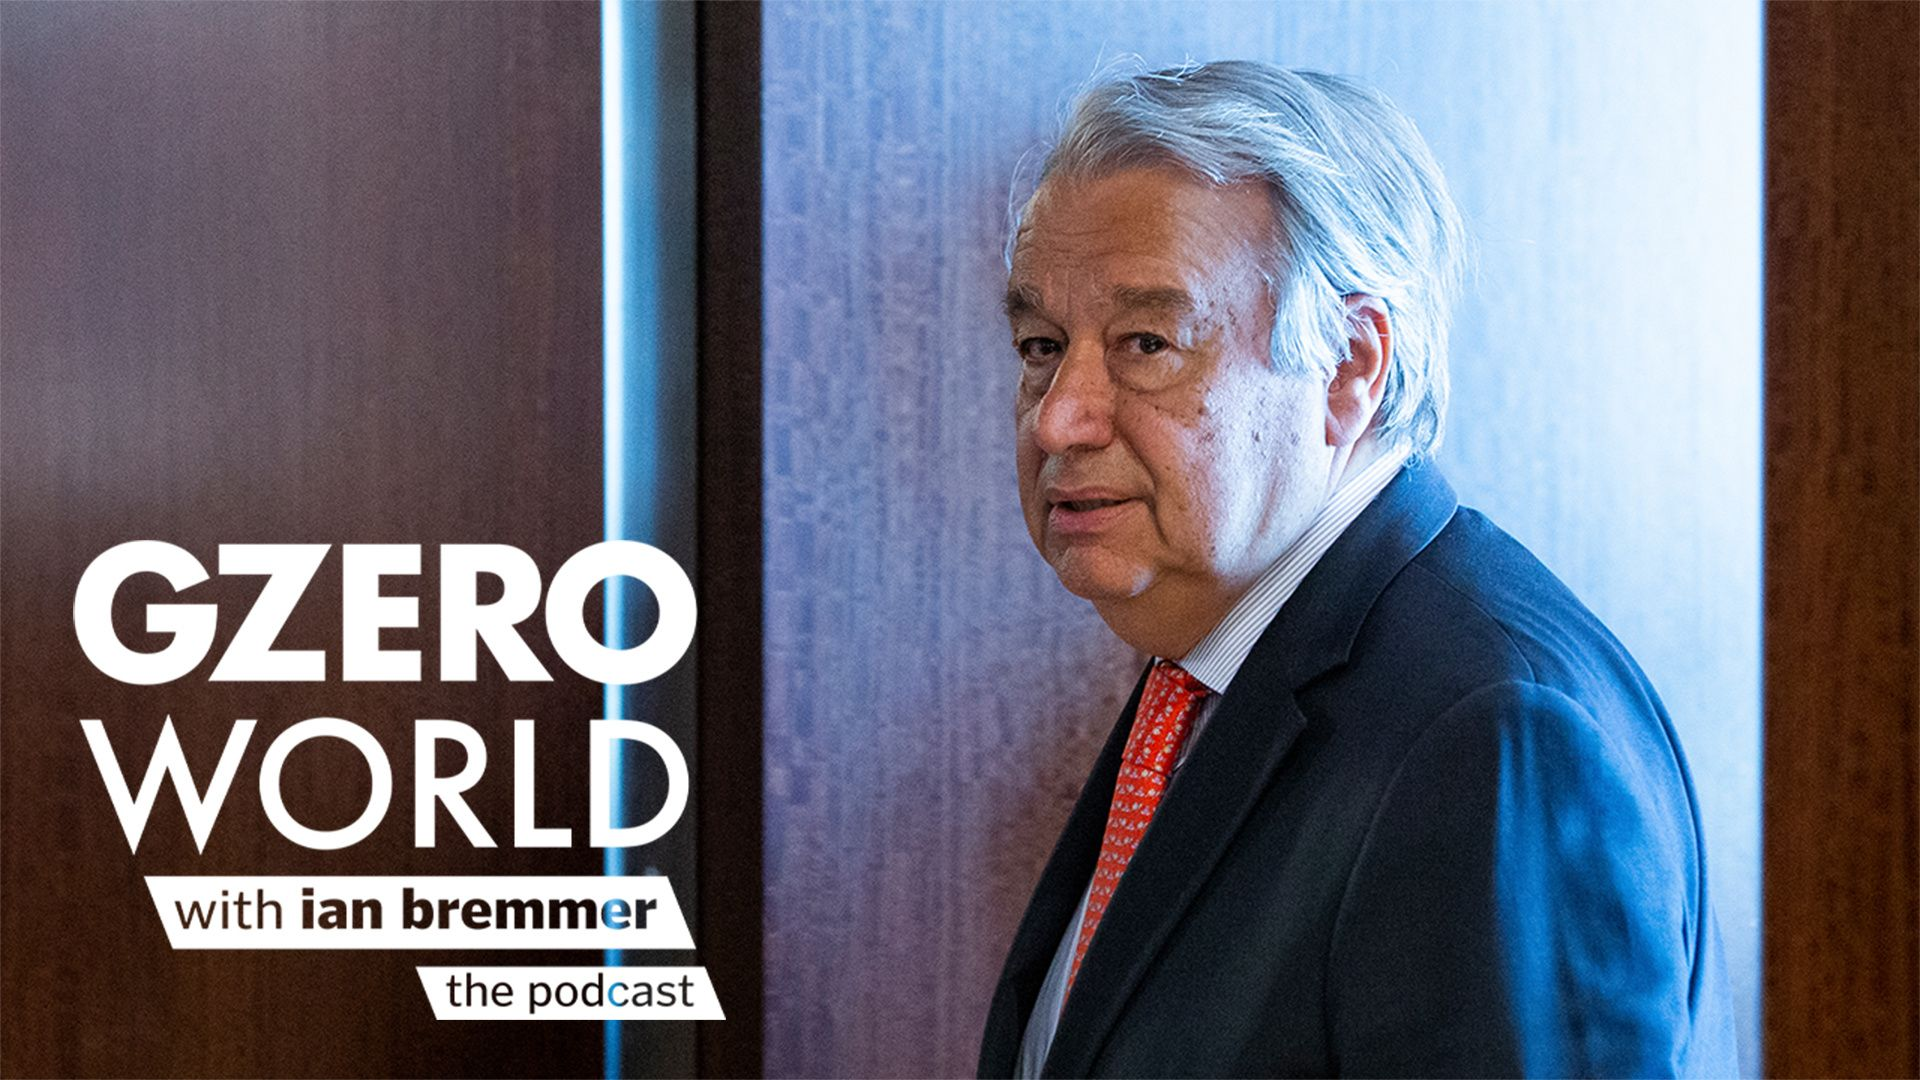 Podcast: Why We Still Need the United Nations with UN Secretary-General António Guterres